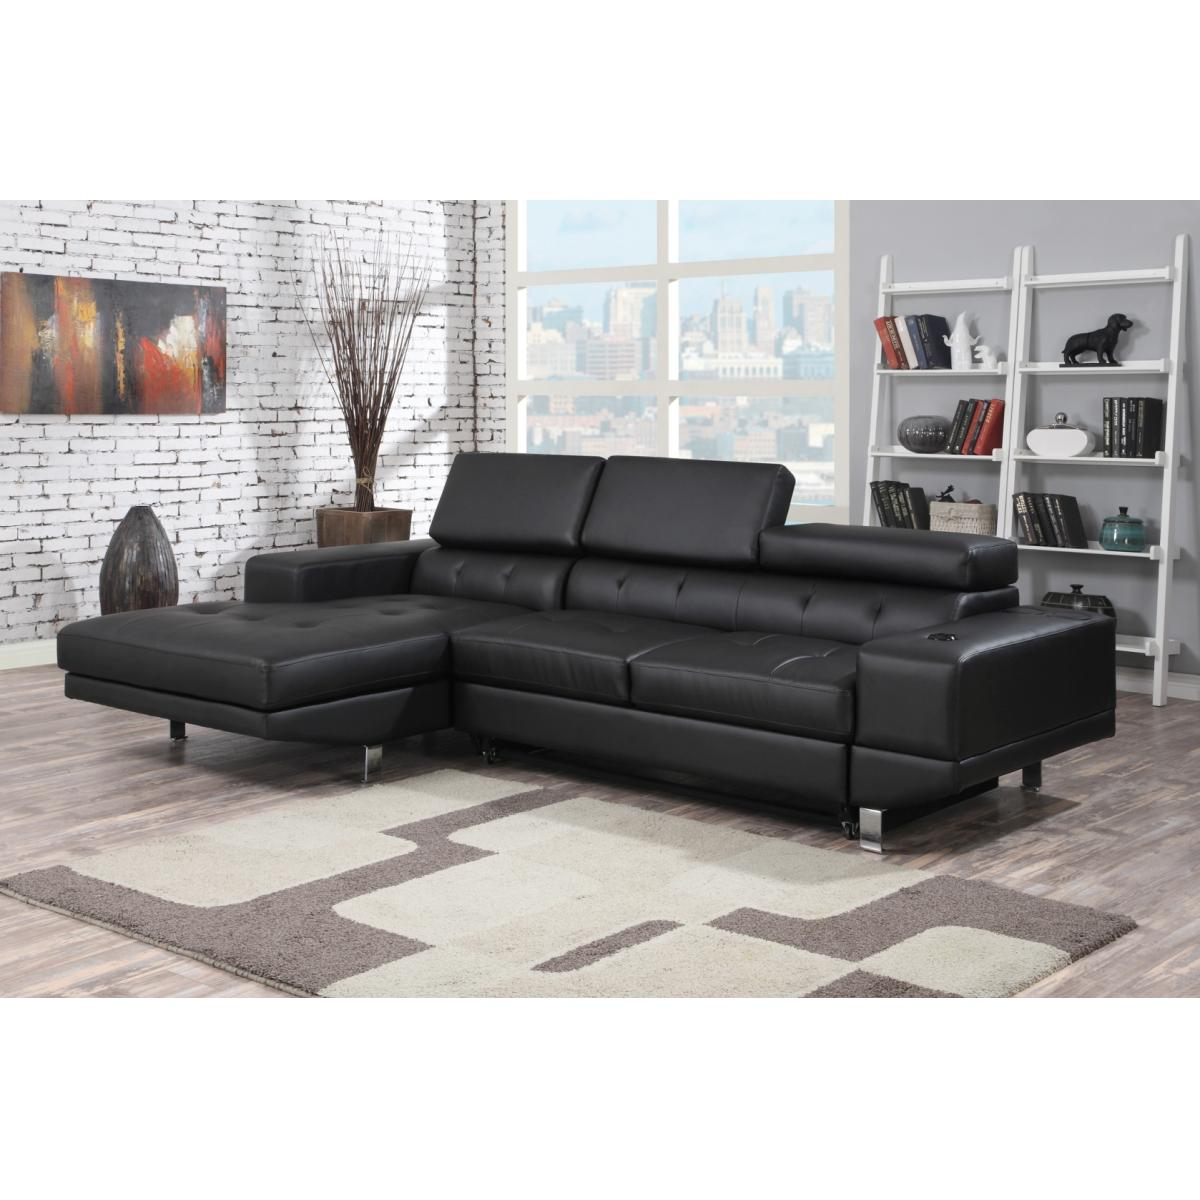 sofa couch schlafsofa designercouch leder bluetooth chaise. Black Bedroom Furniture Sets. Home Design Ideas